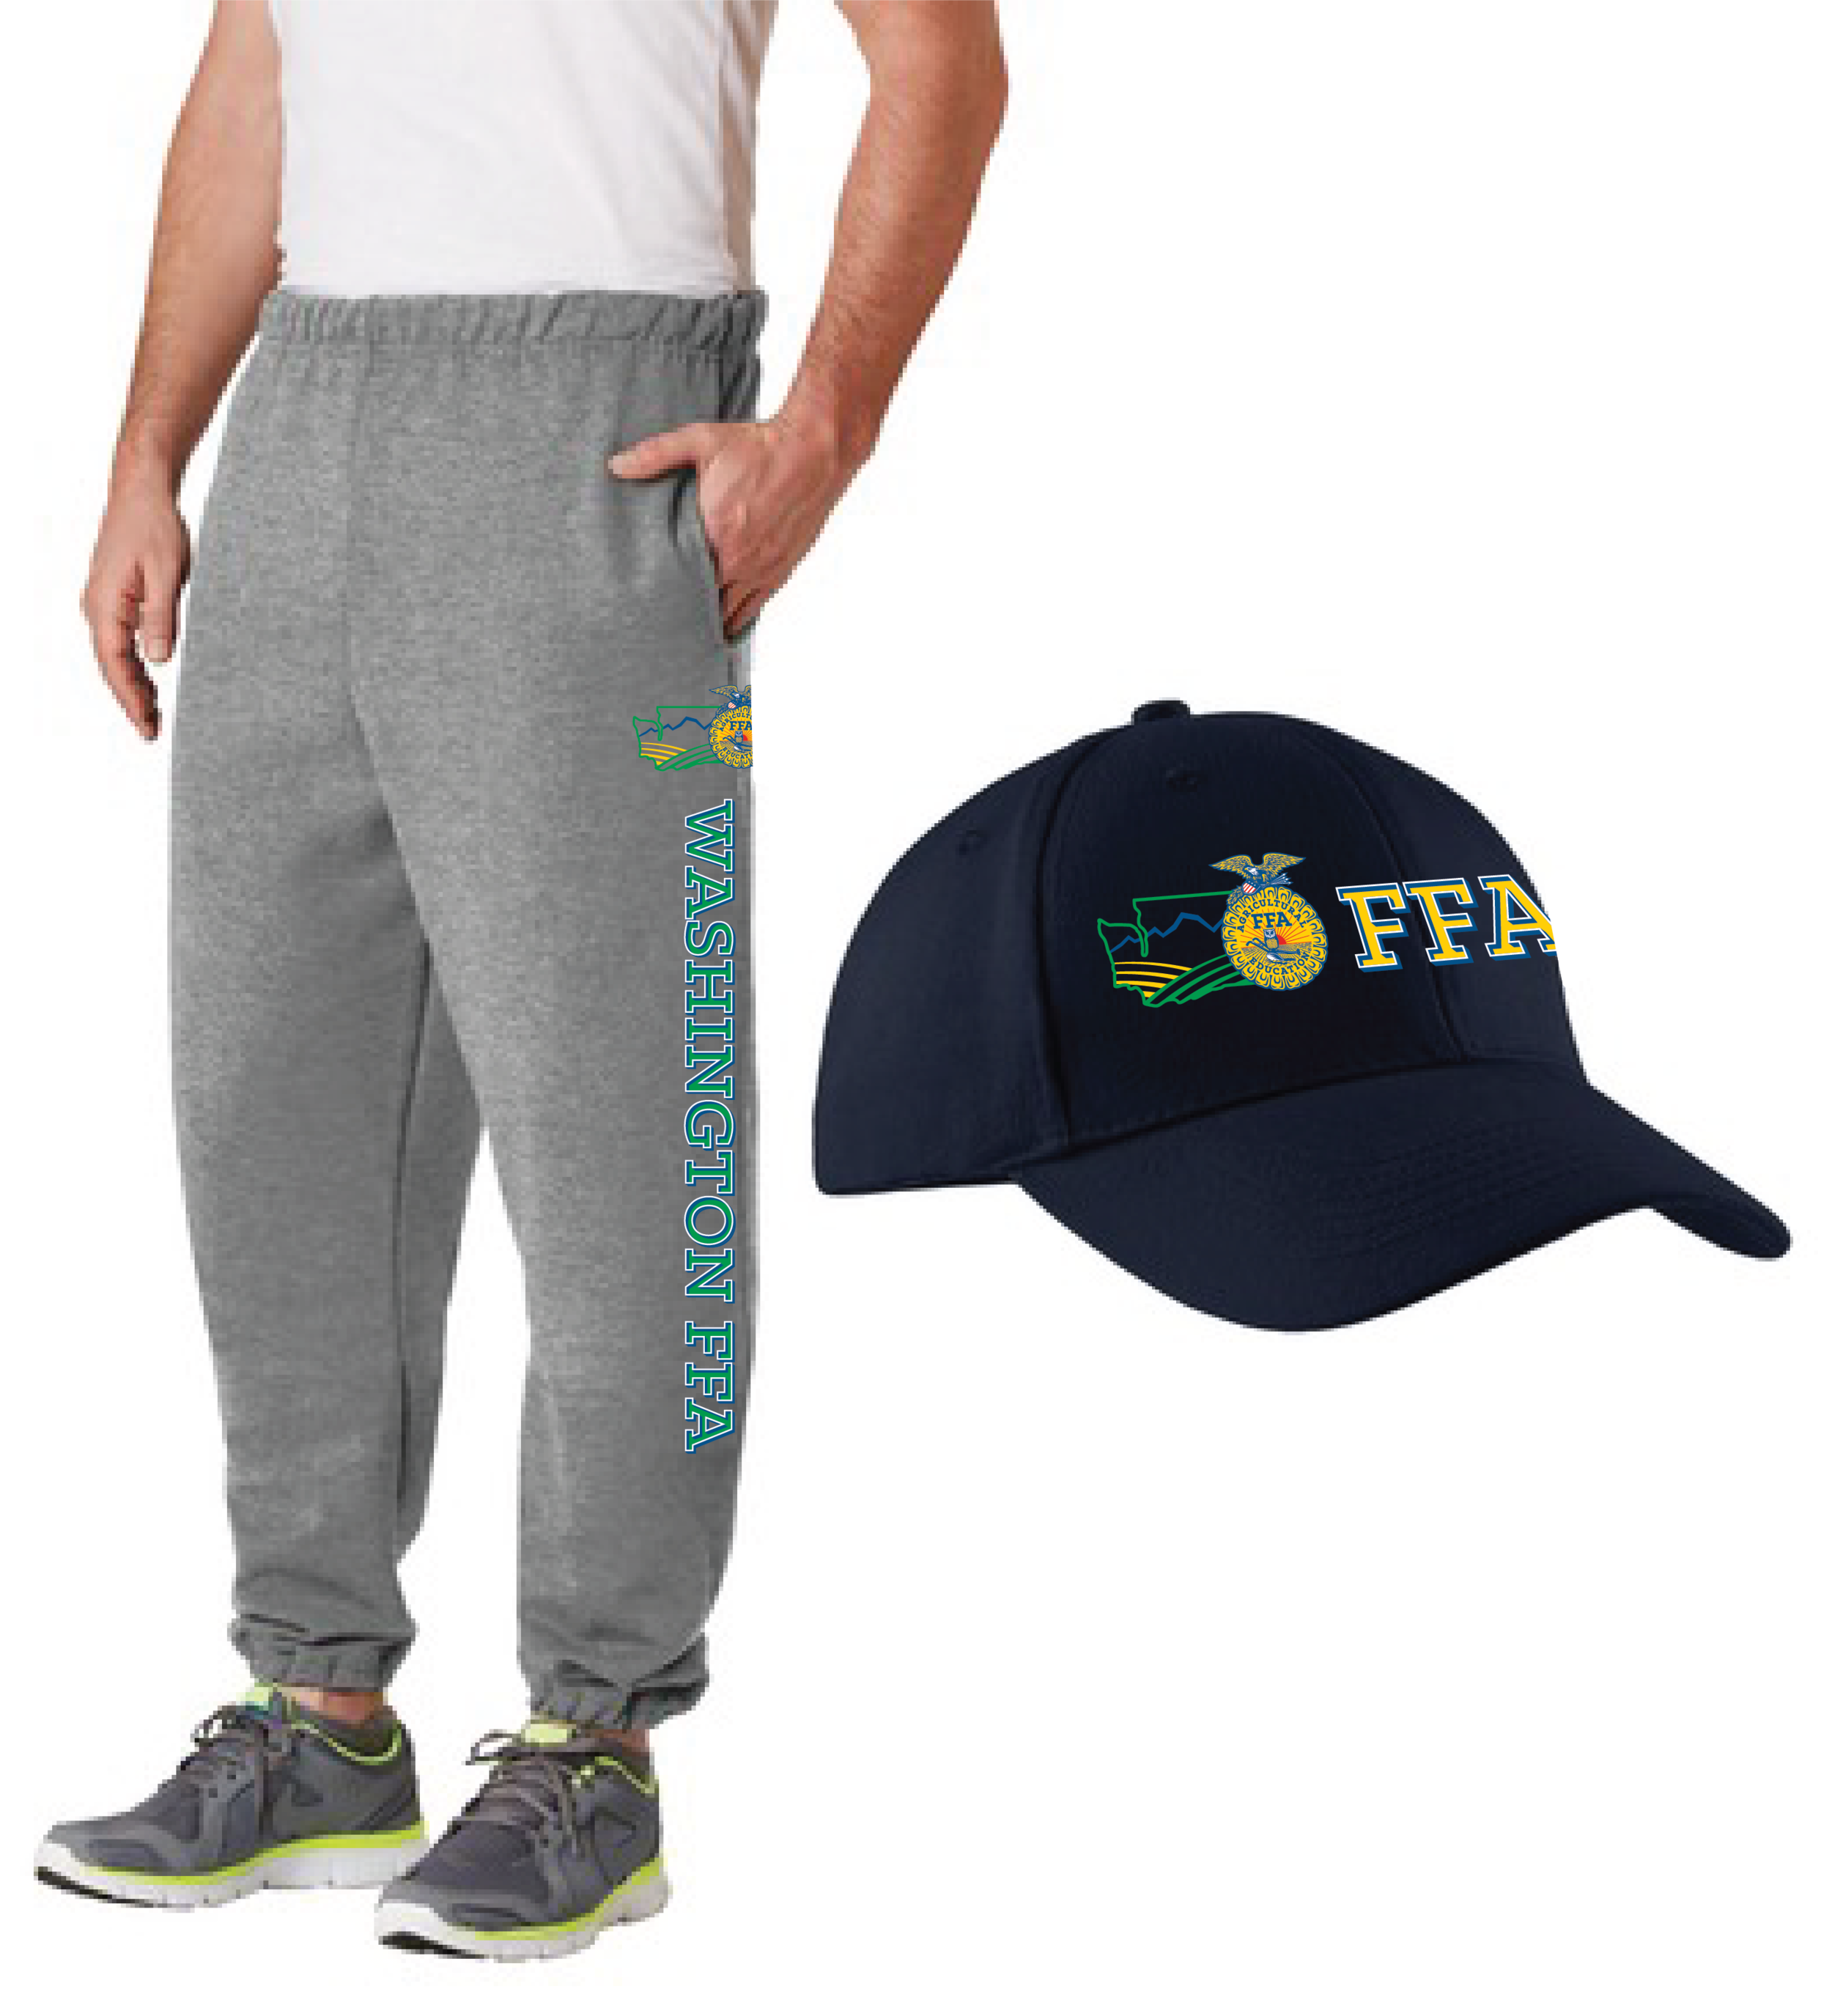 Sweatpants & Hat Mockup@4x.png